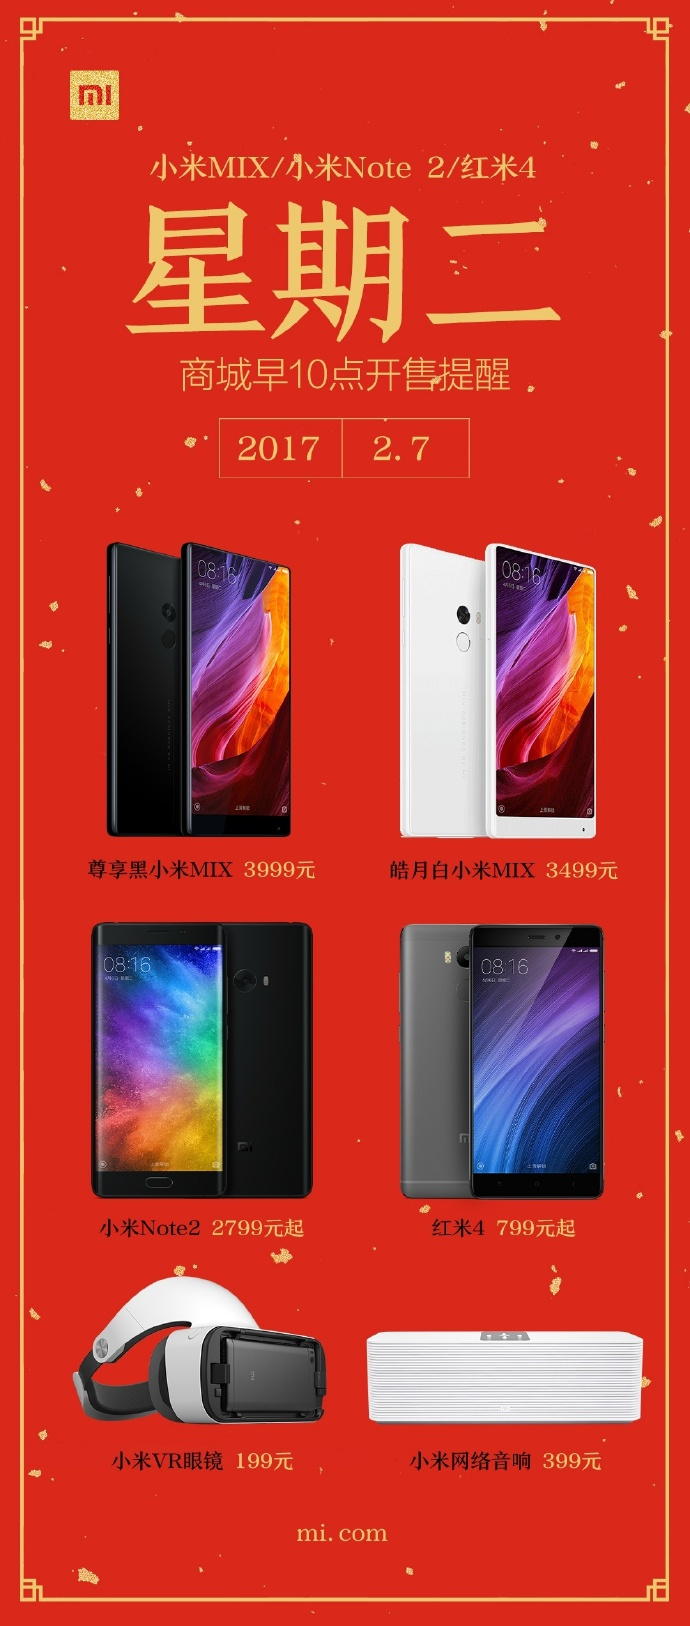 White Xiaomi Mi Mix will go on its first flash sale today